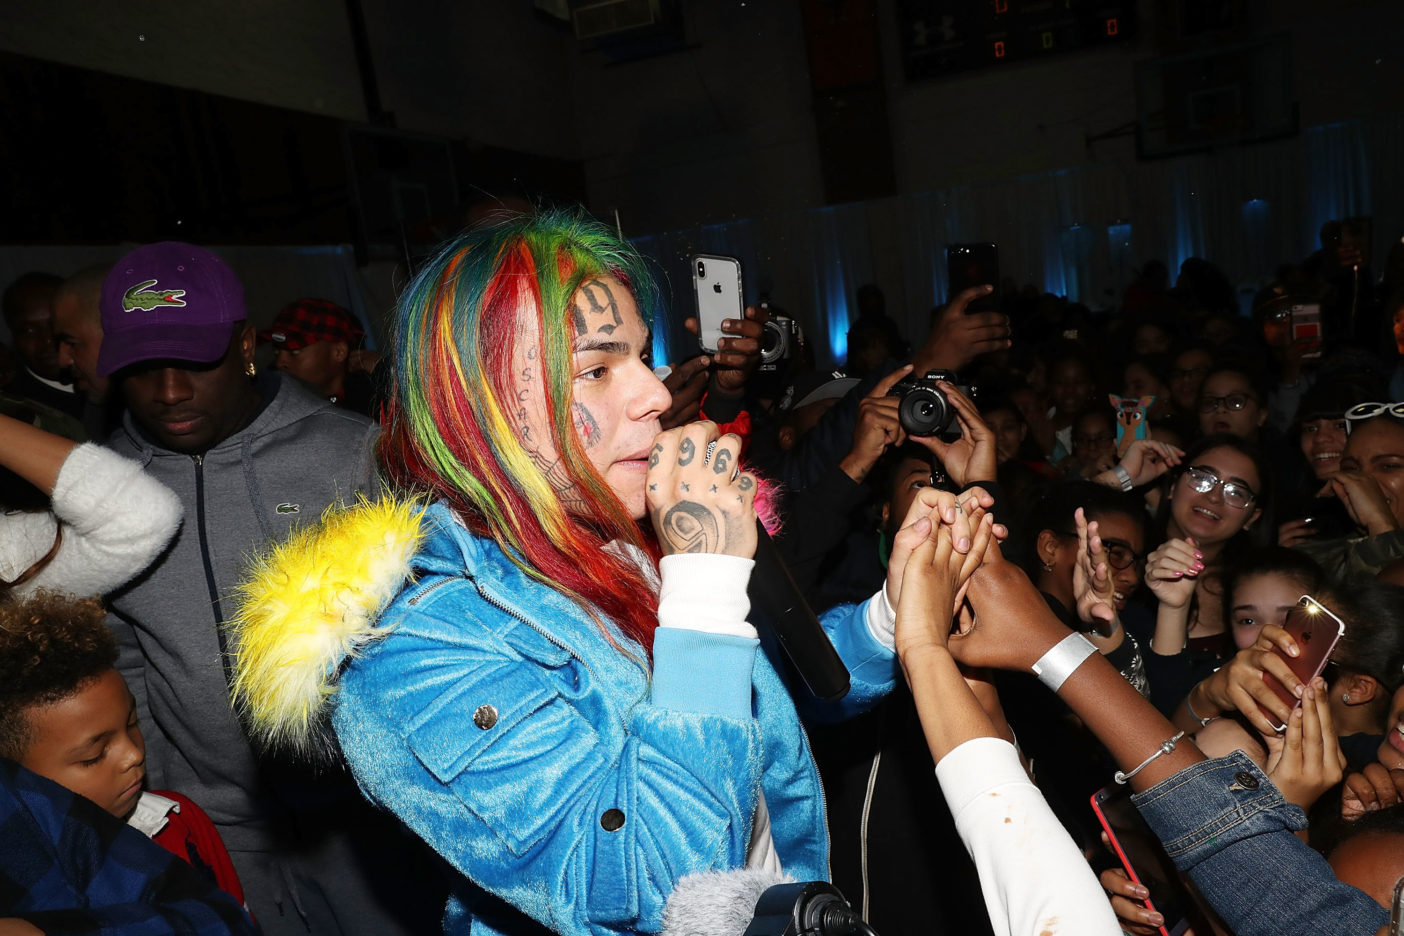 Tekashi69 Accused Of Staging His Own Kidnapping And Robbery Tekashi69 GettyImages 897085430 1404x936